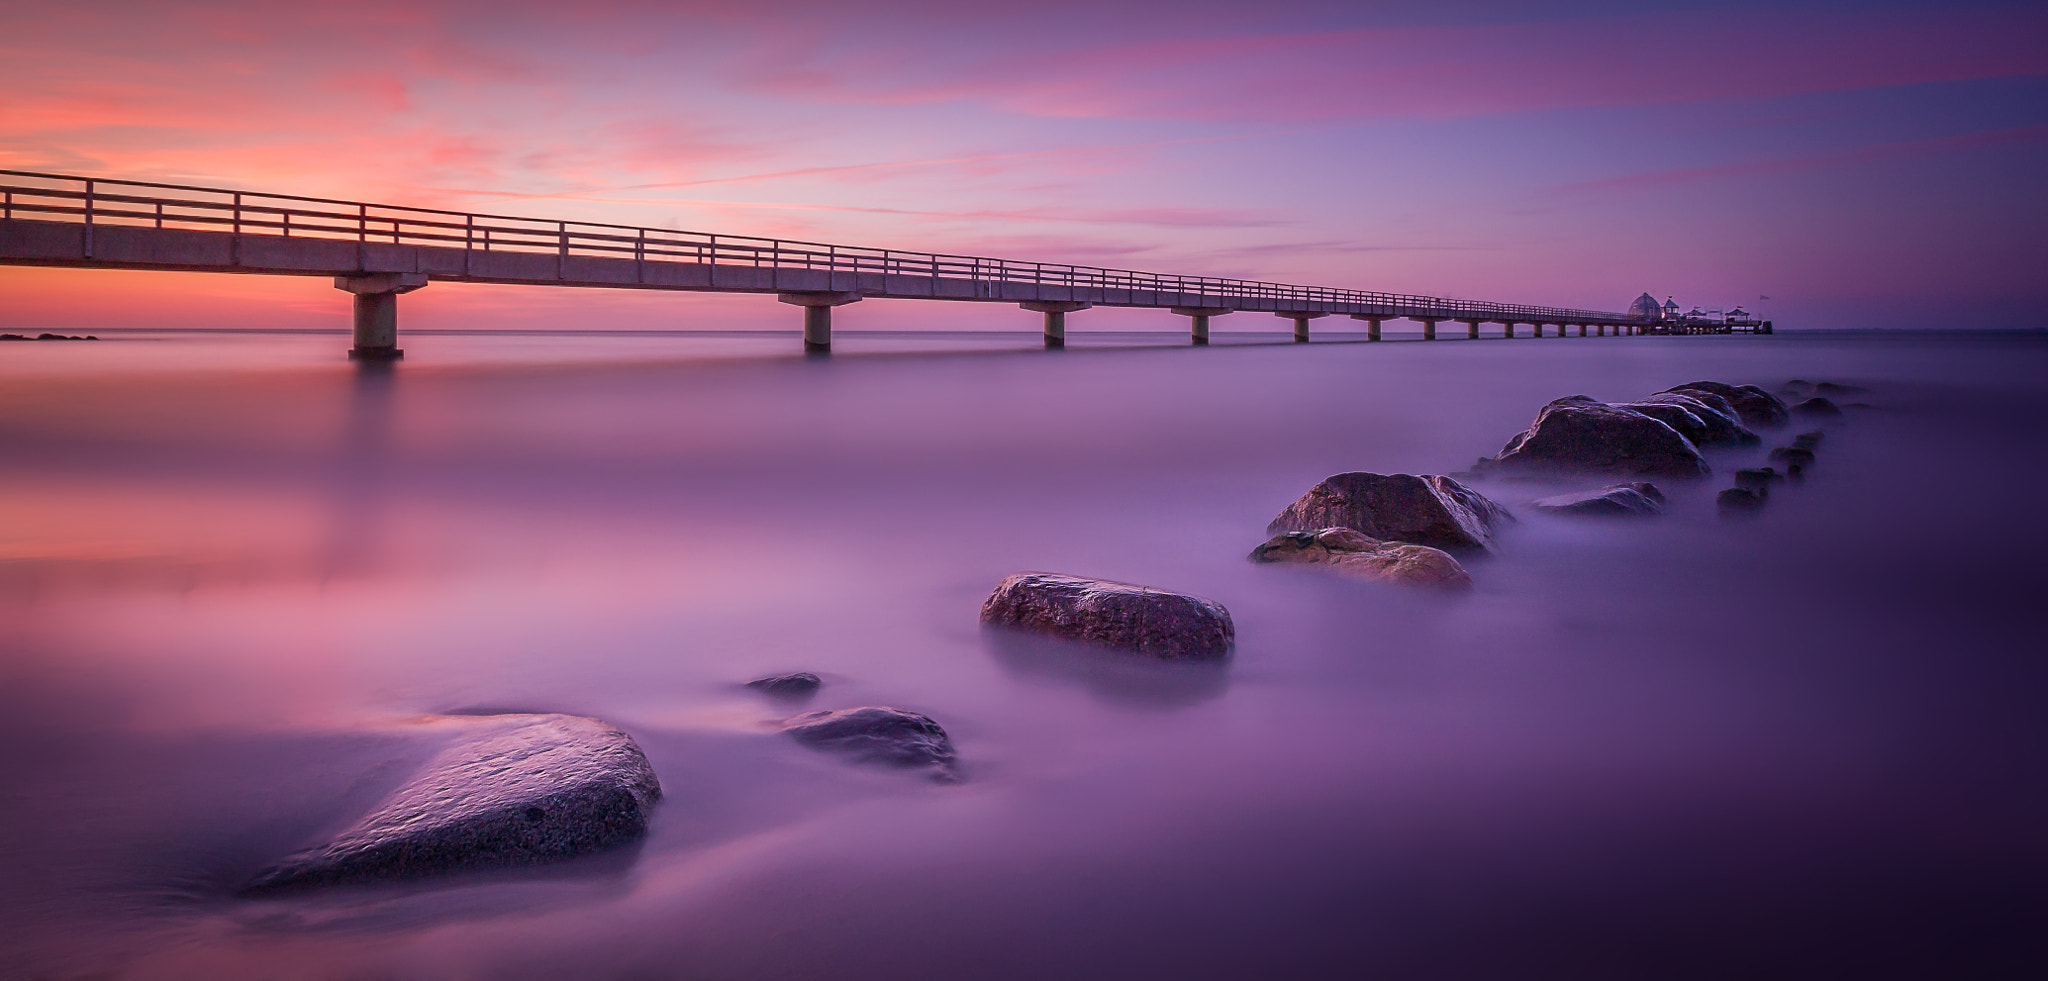 Photograph Sunrise by Andreas Ling on 500px